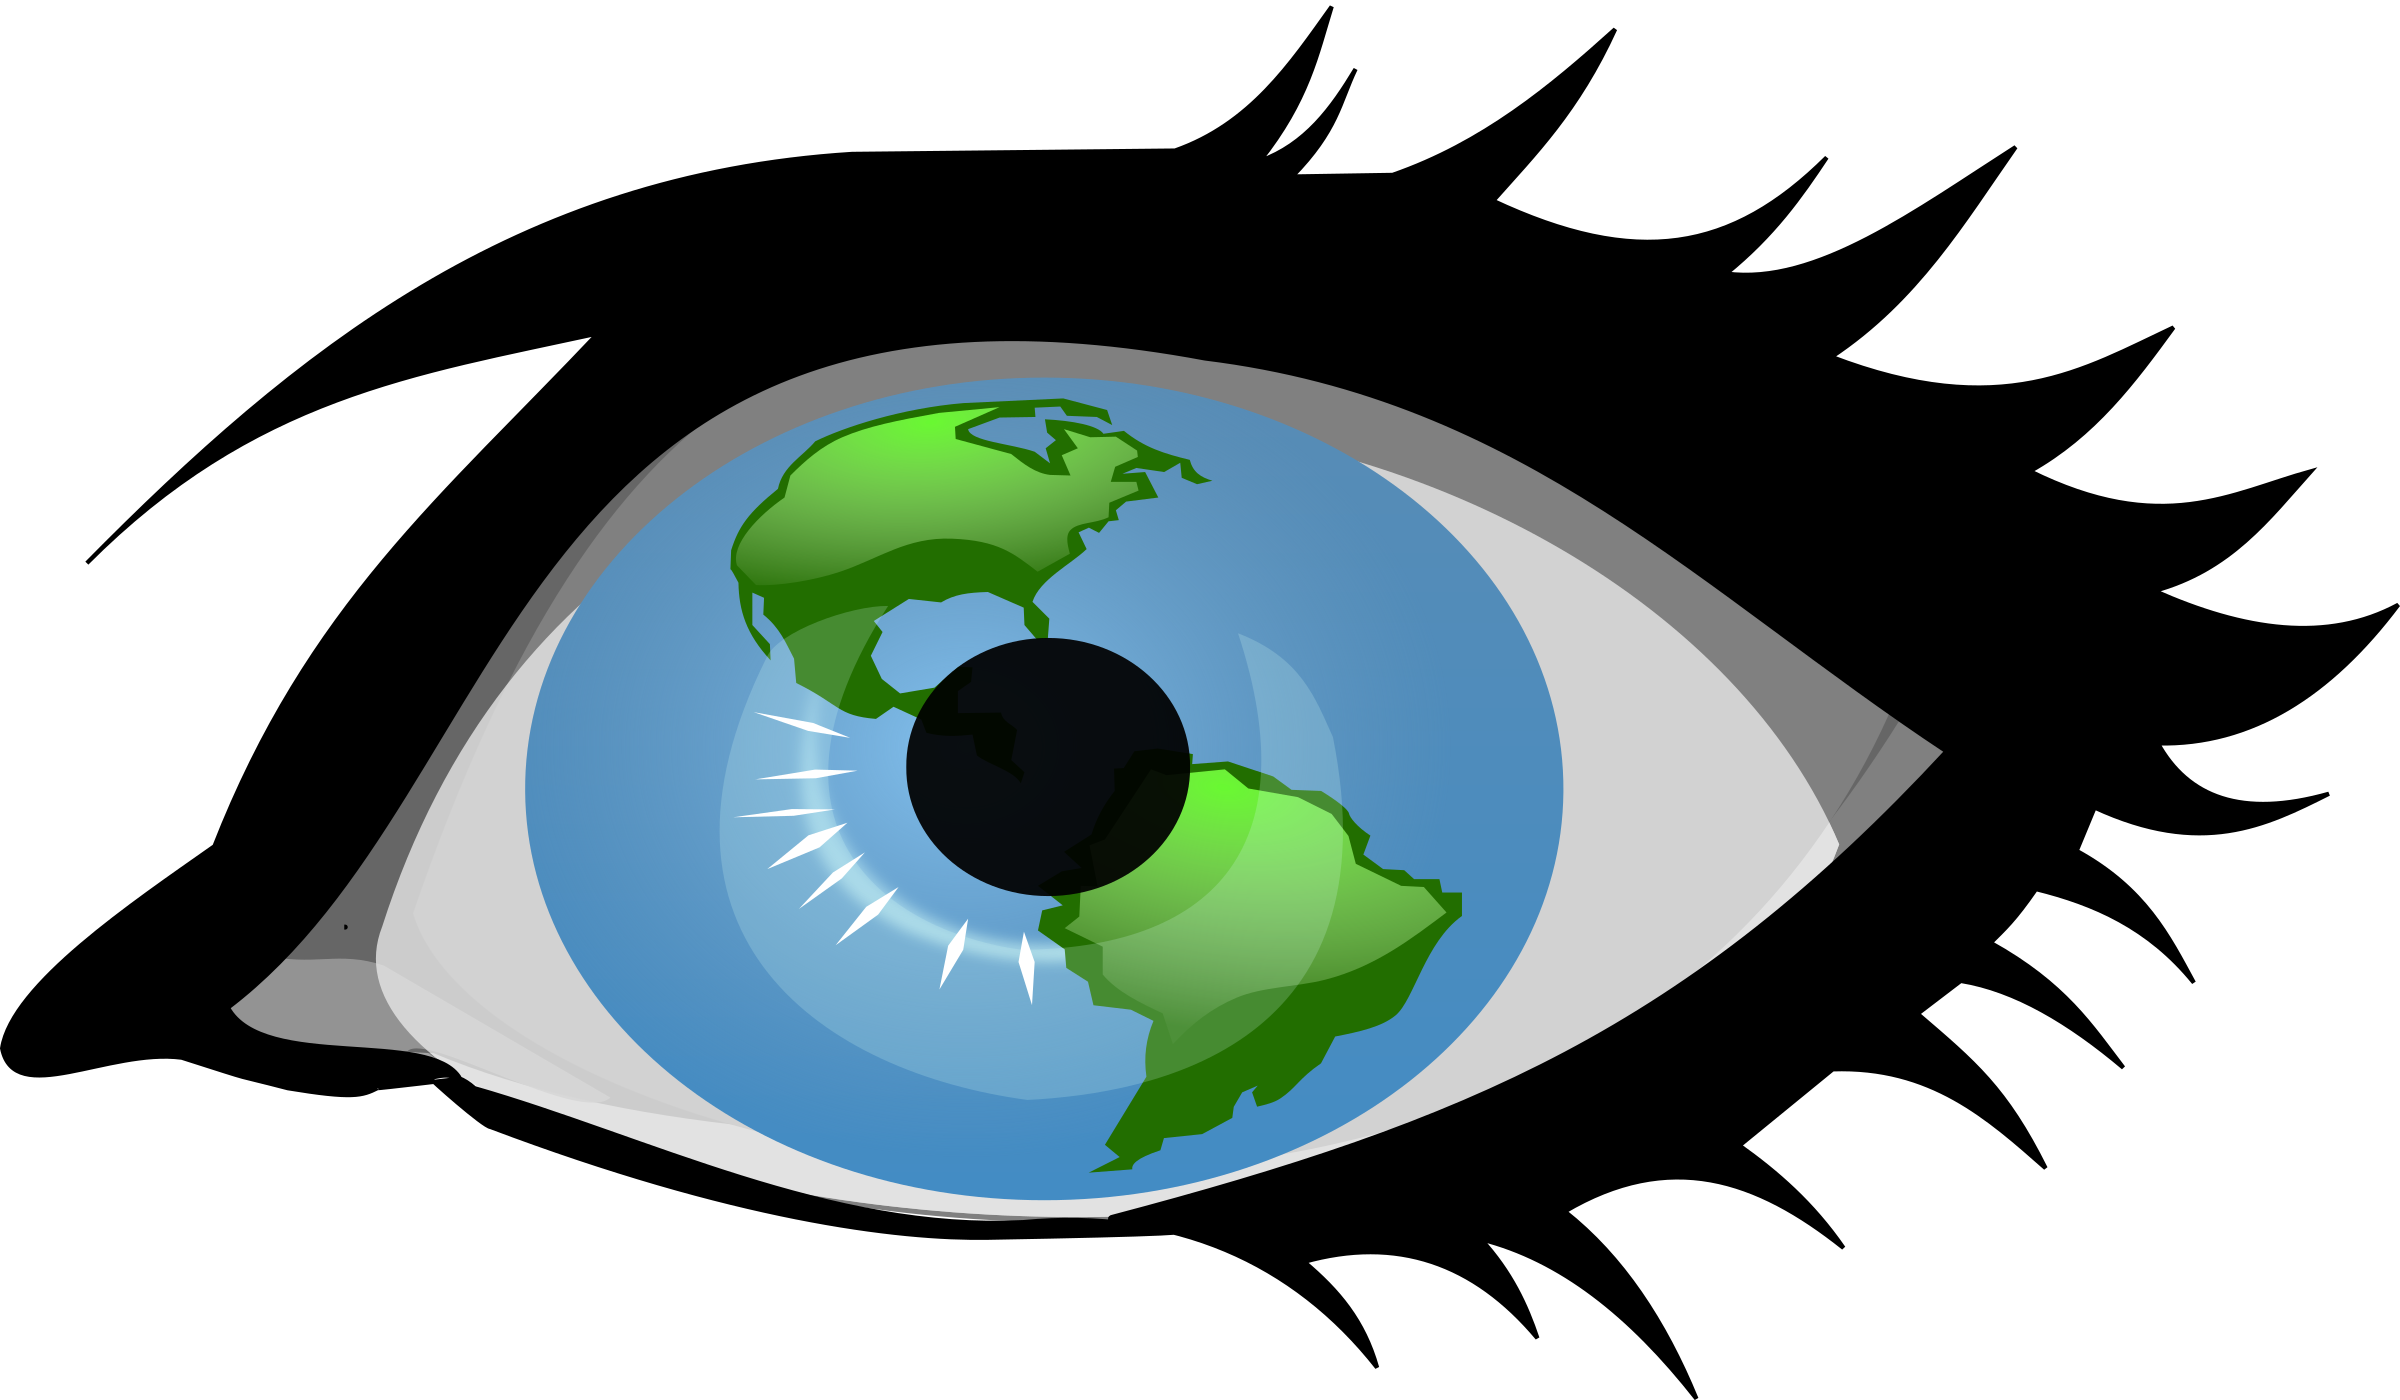 2400x1400 Eyeball clipart eye vision